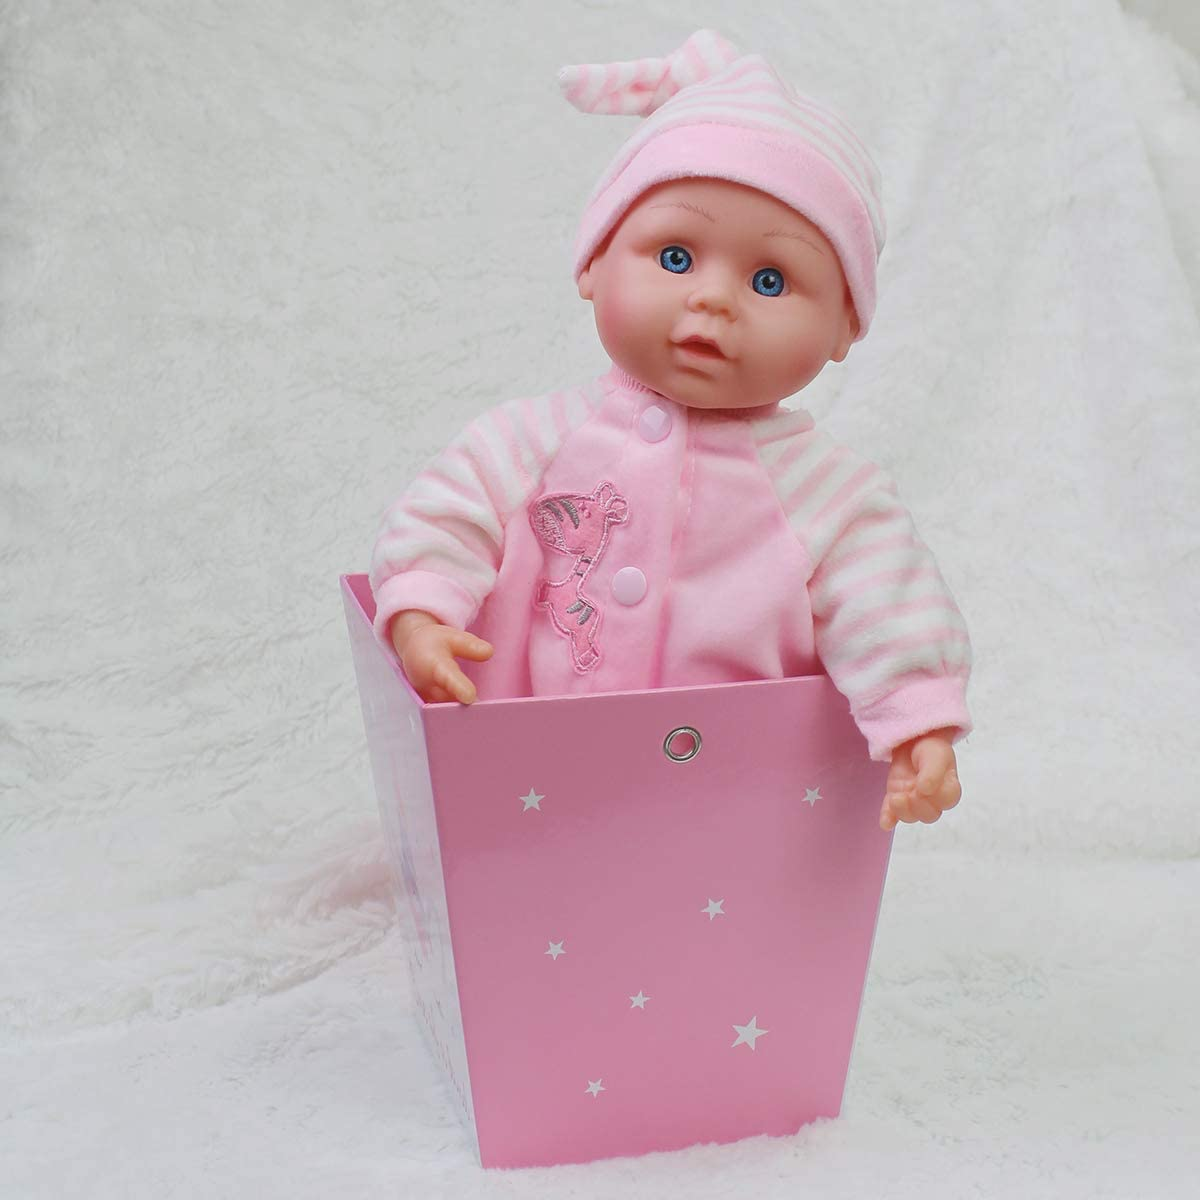 """100/% Washable Removable Pink Rompers in White Shoes Cute Soft Body Vinyl Play Toy for Sweet Collection 15/"""" Realistic Baby Girl in Pink Gift Box"""